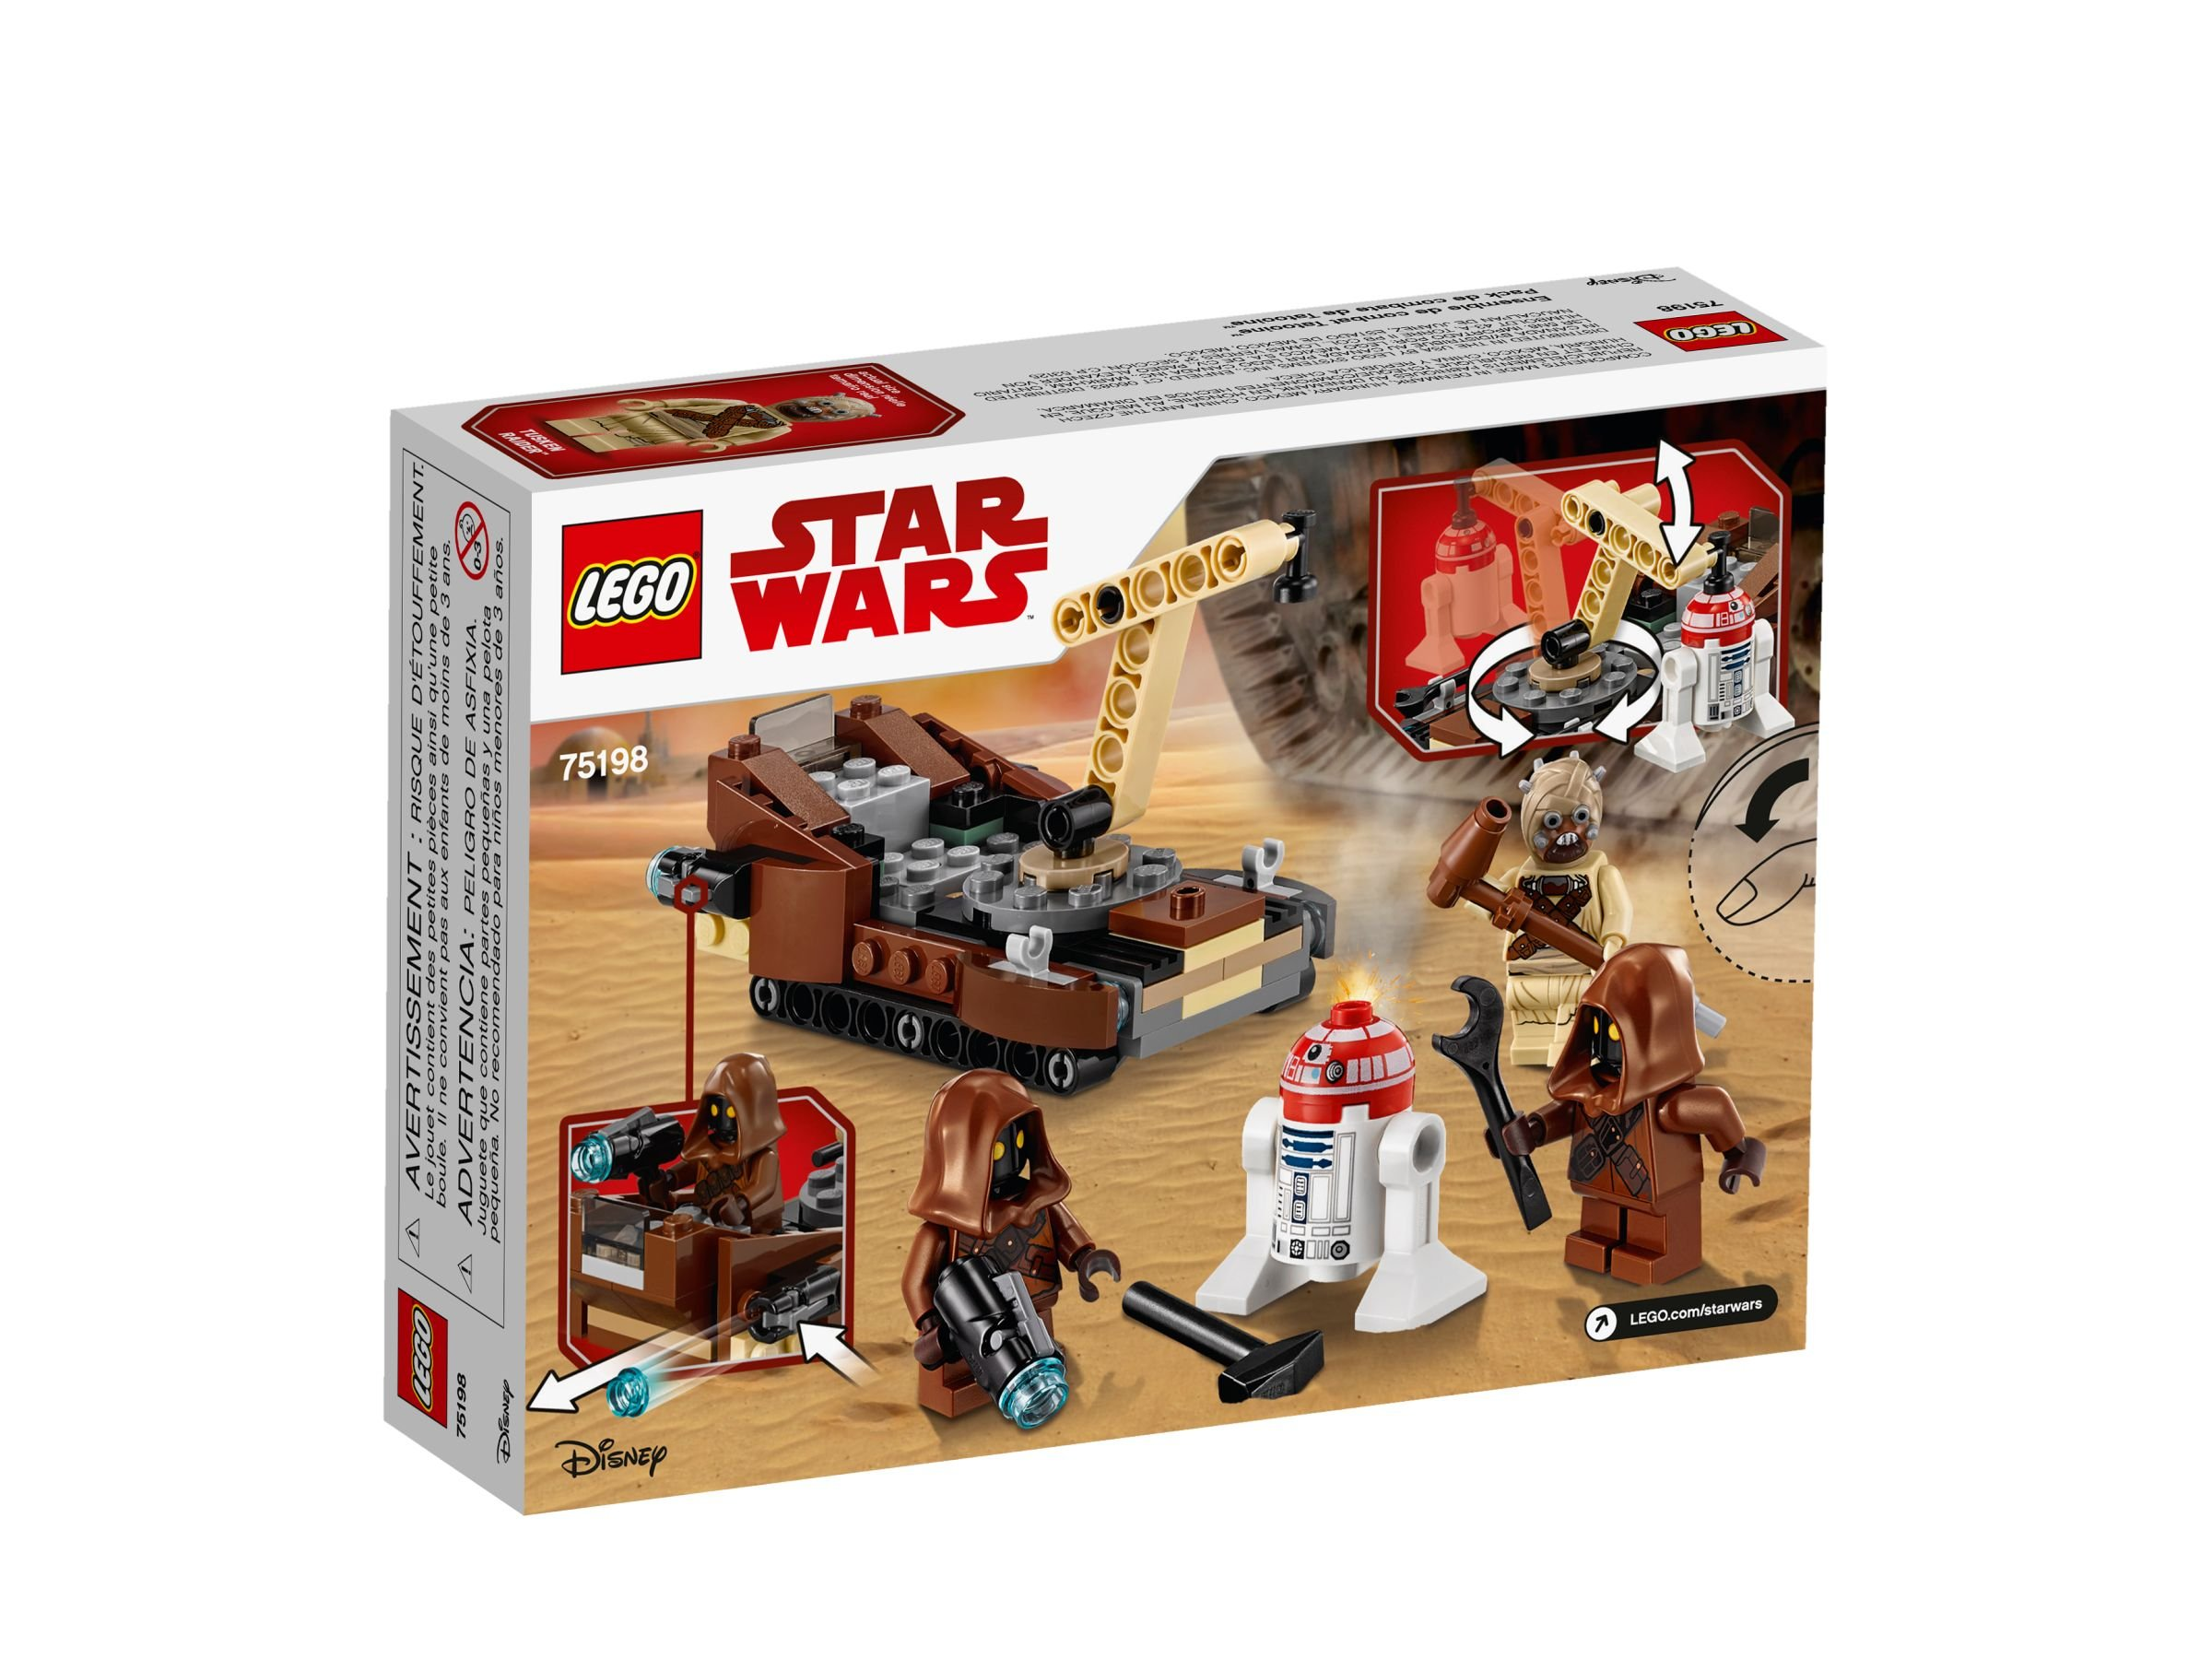 LEGO Star Wars 75198 Tatooine Battle Pack LEGO_75198_alt2.jpg